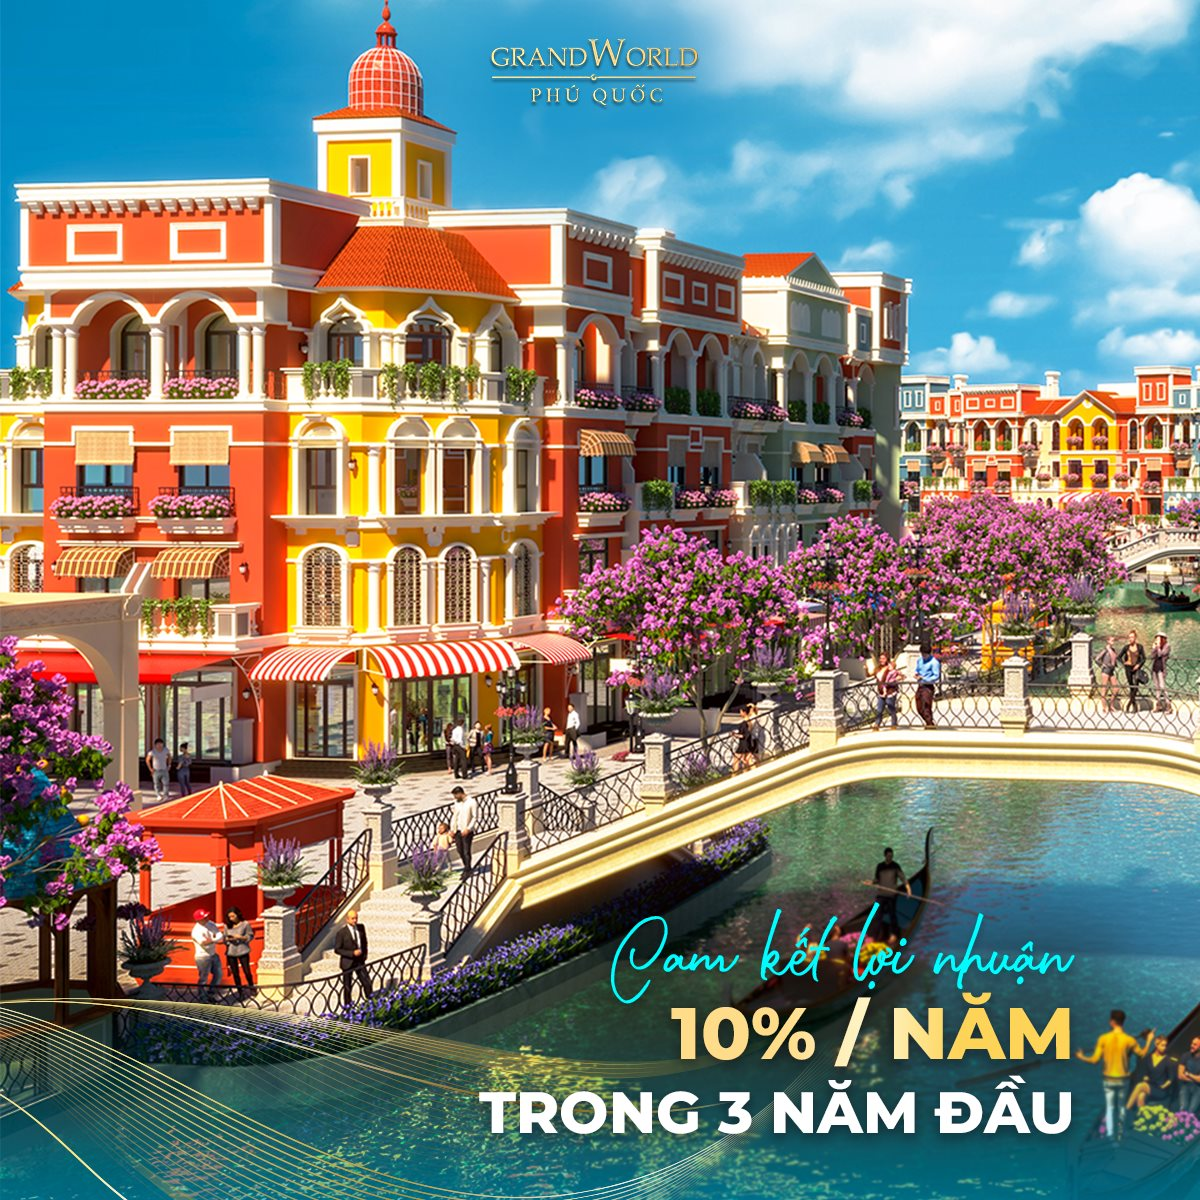 chinh-sach-ban-hang-condotel-grand-world-phu-quoc